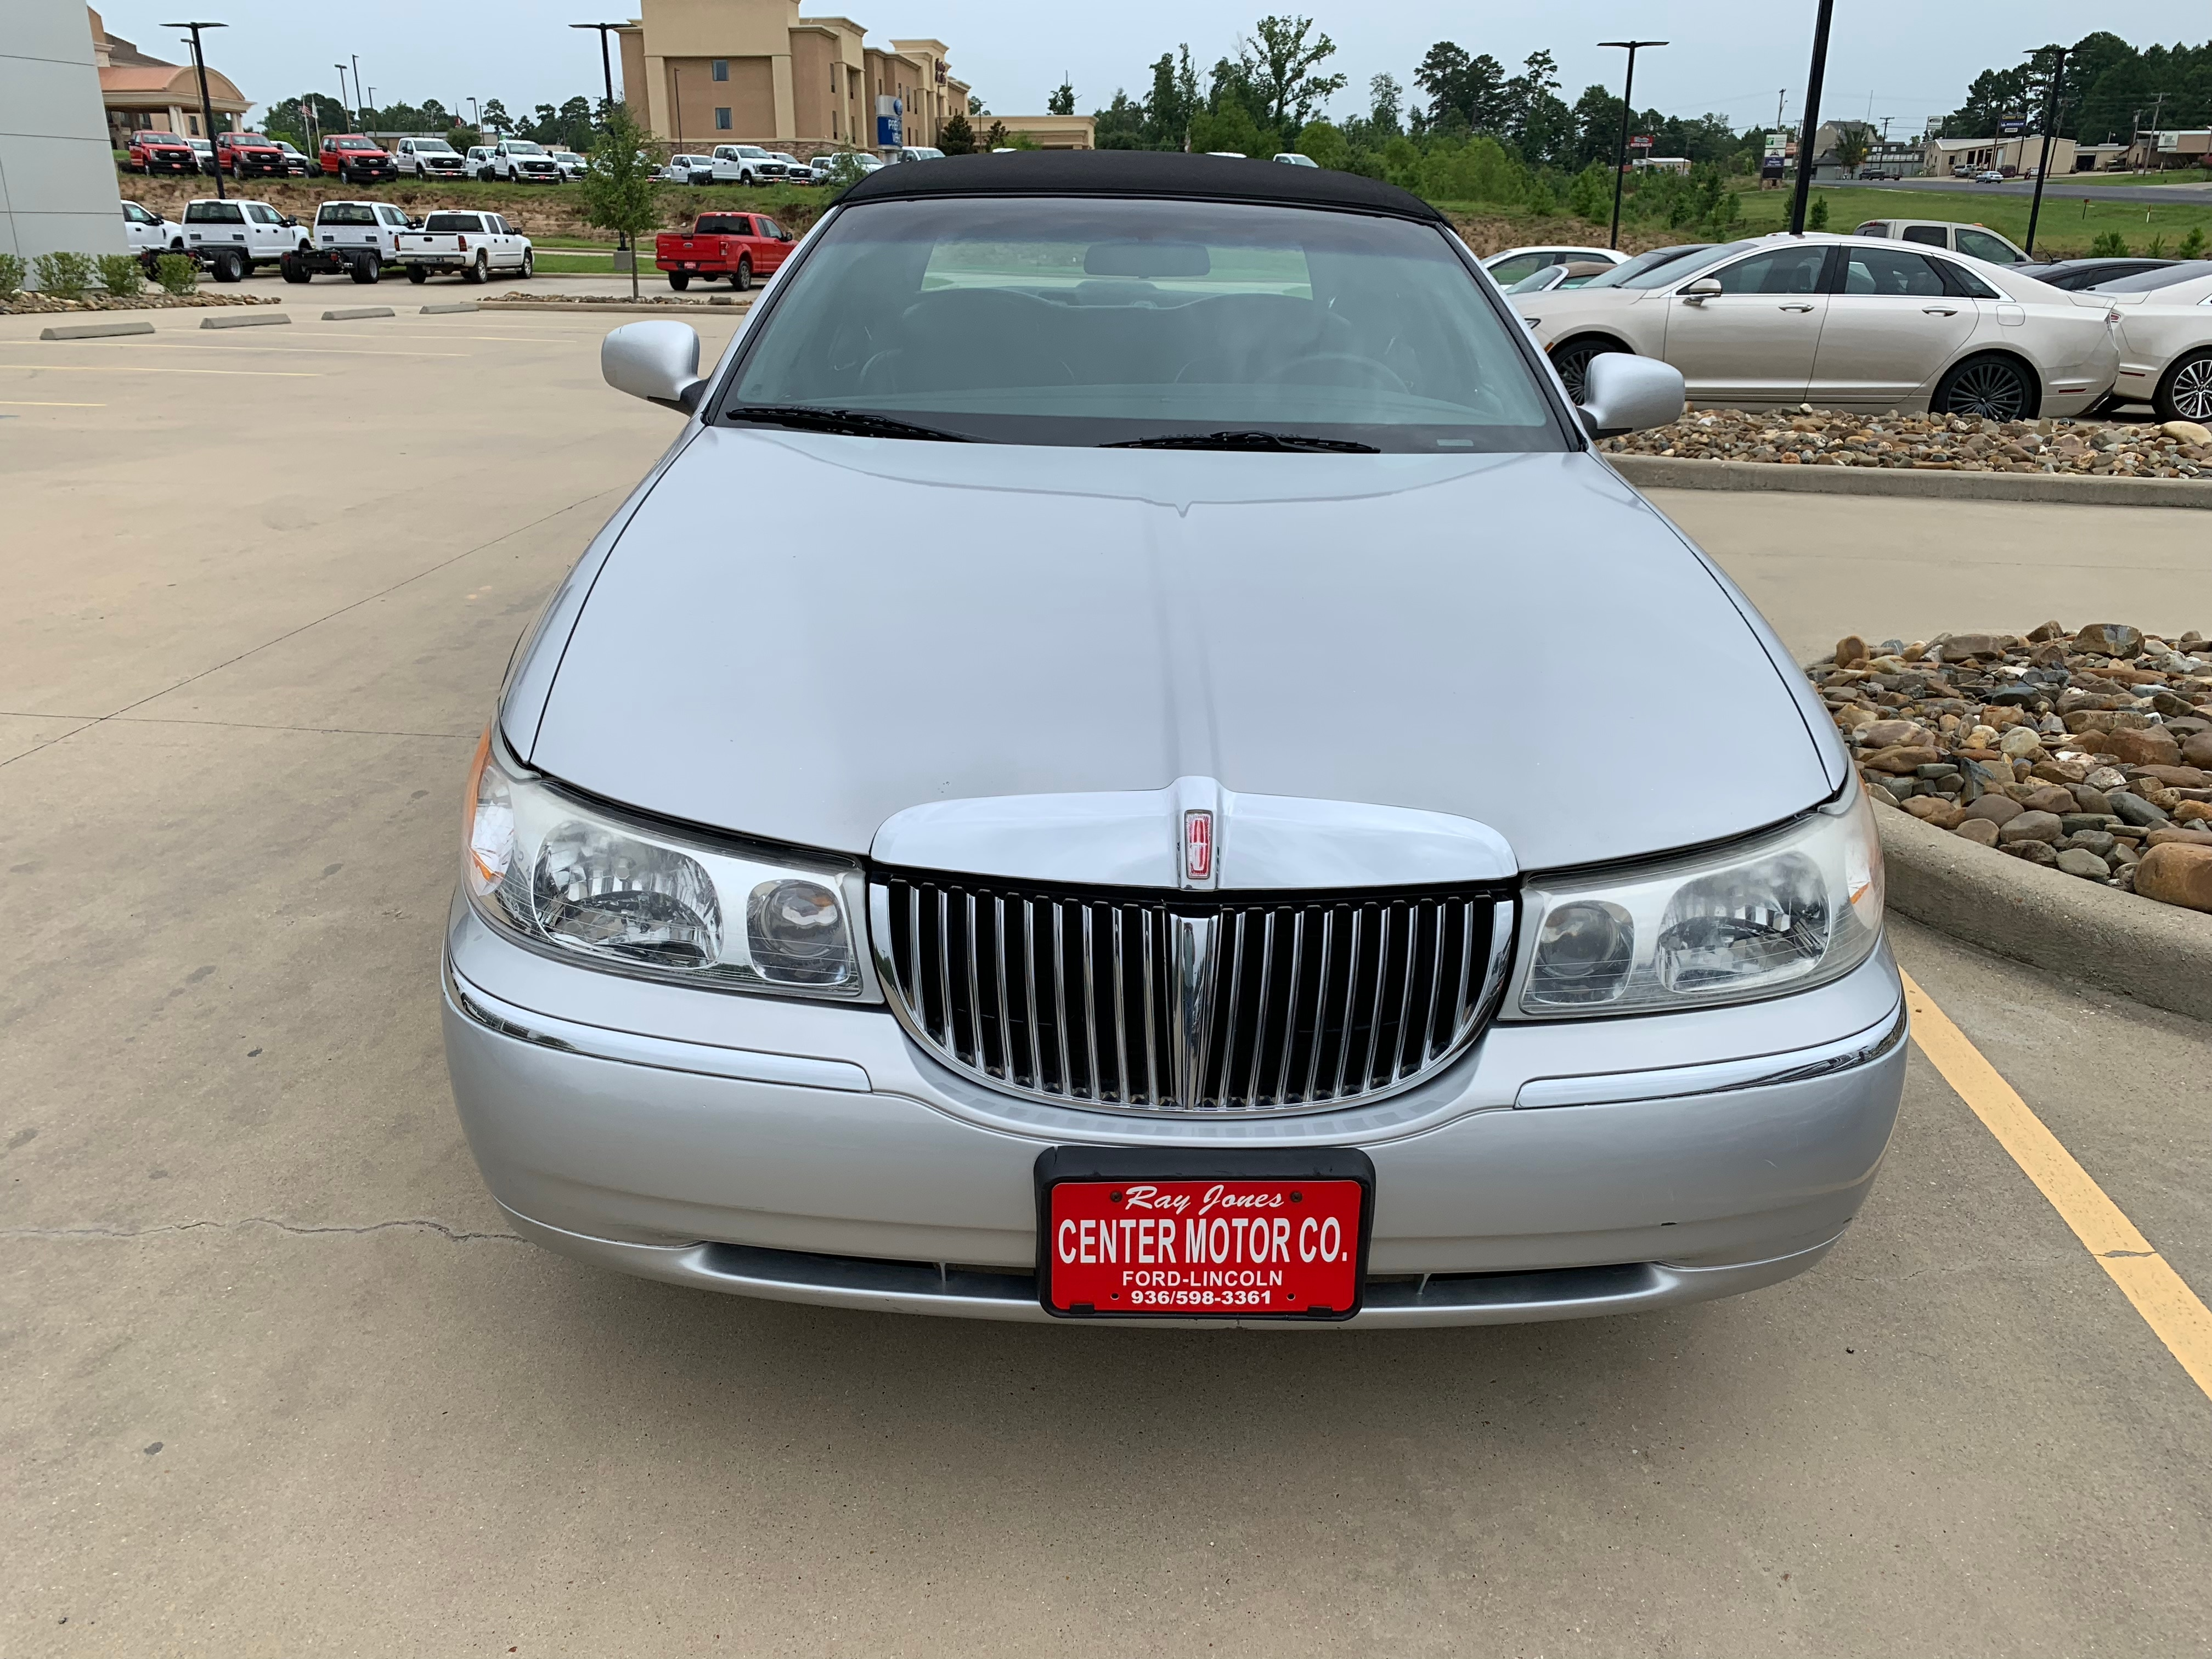 Used 2000 Lincoln Town Car For Sale at Center Motor Company